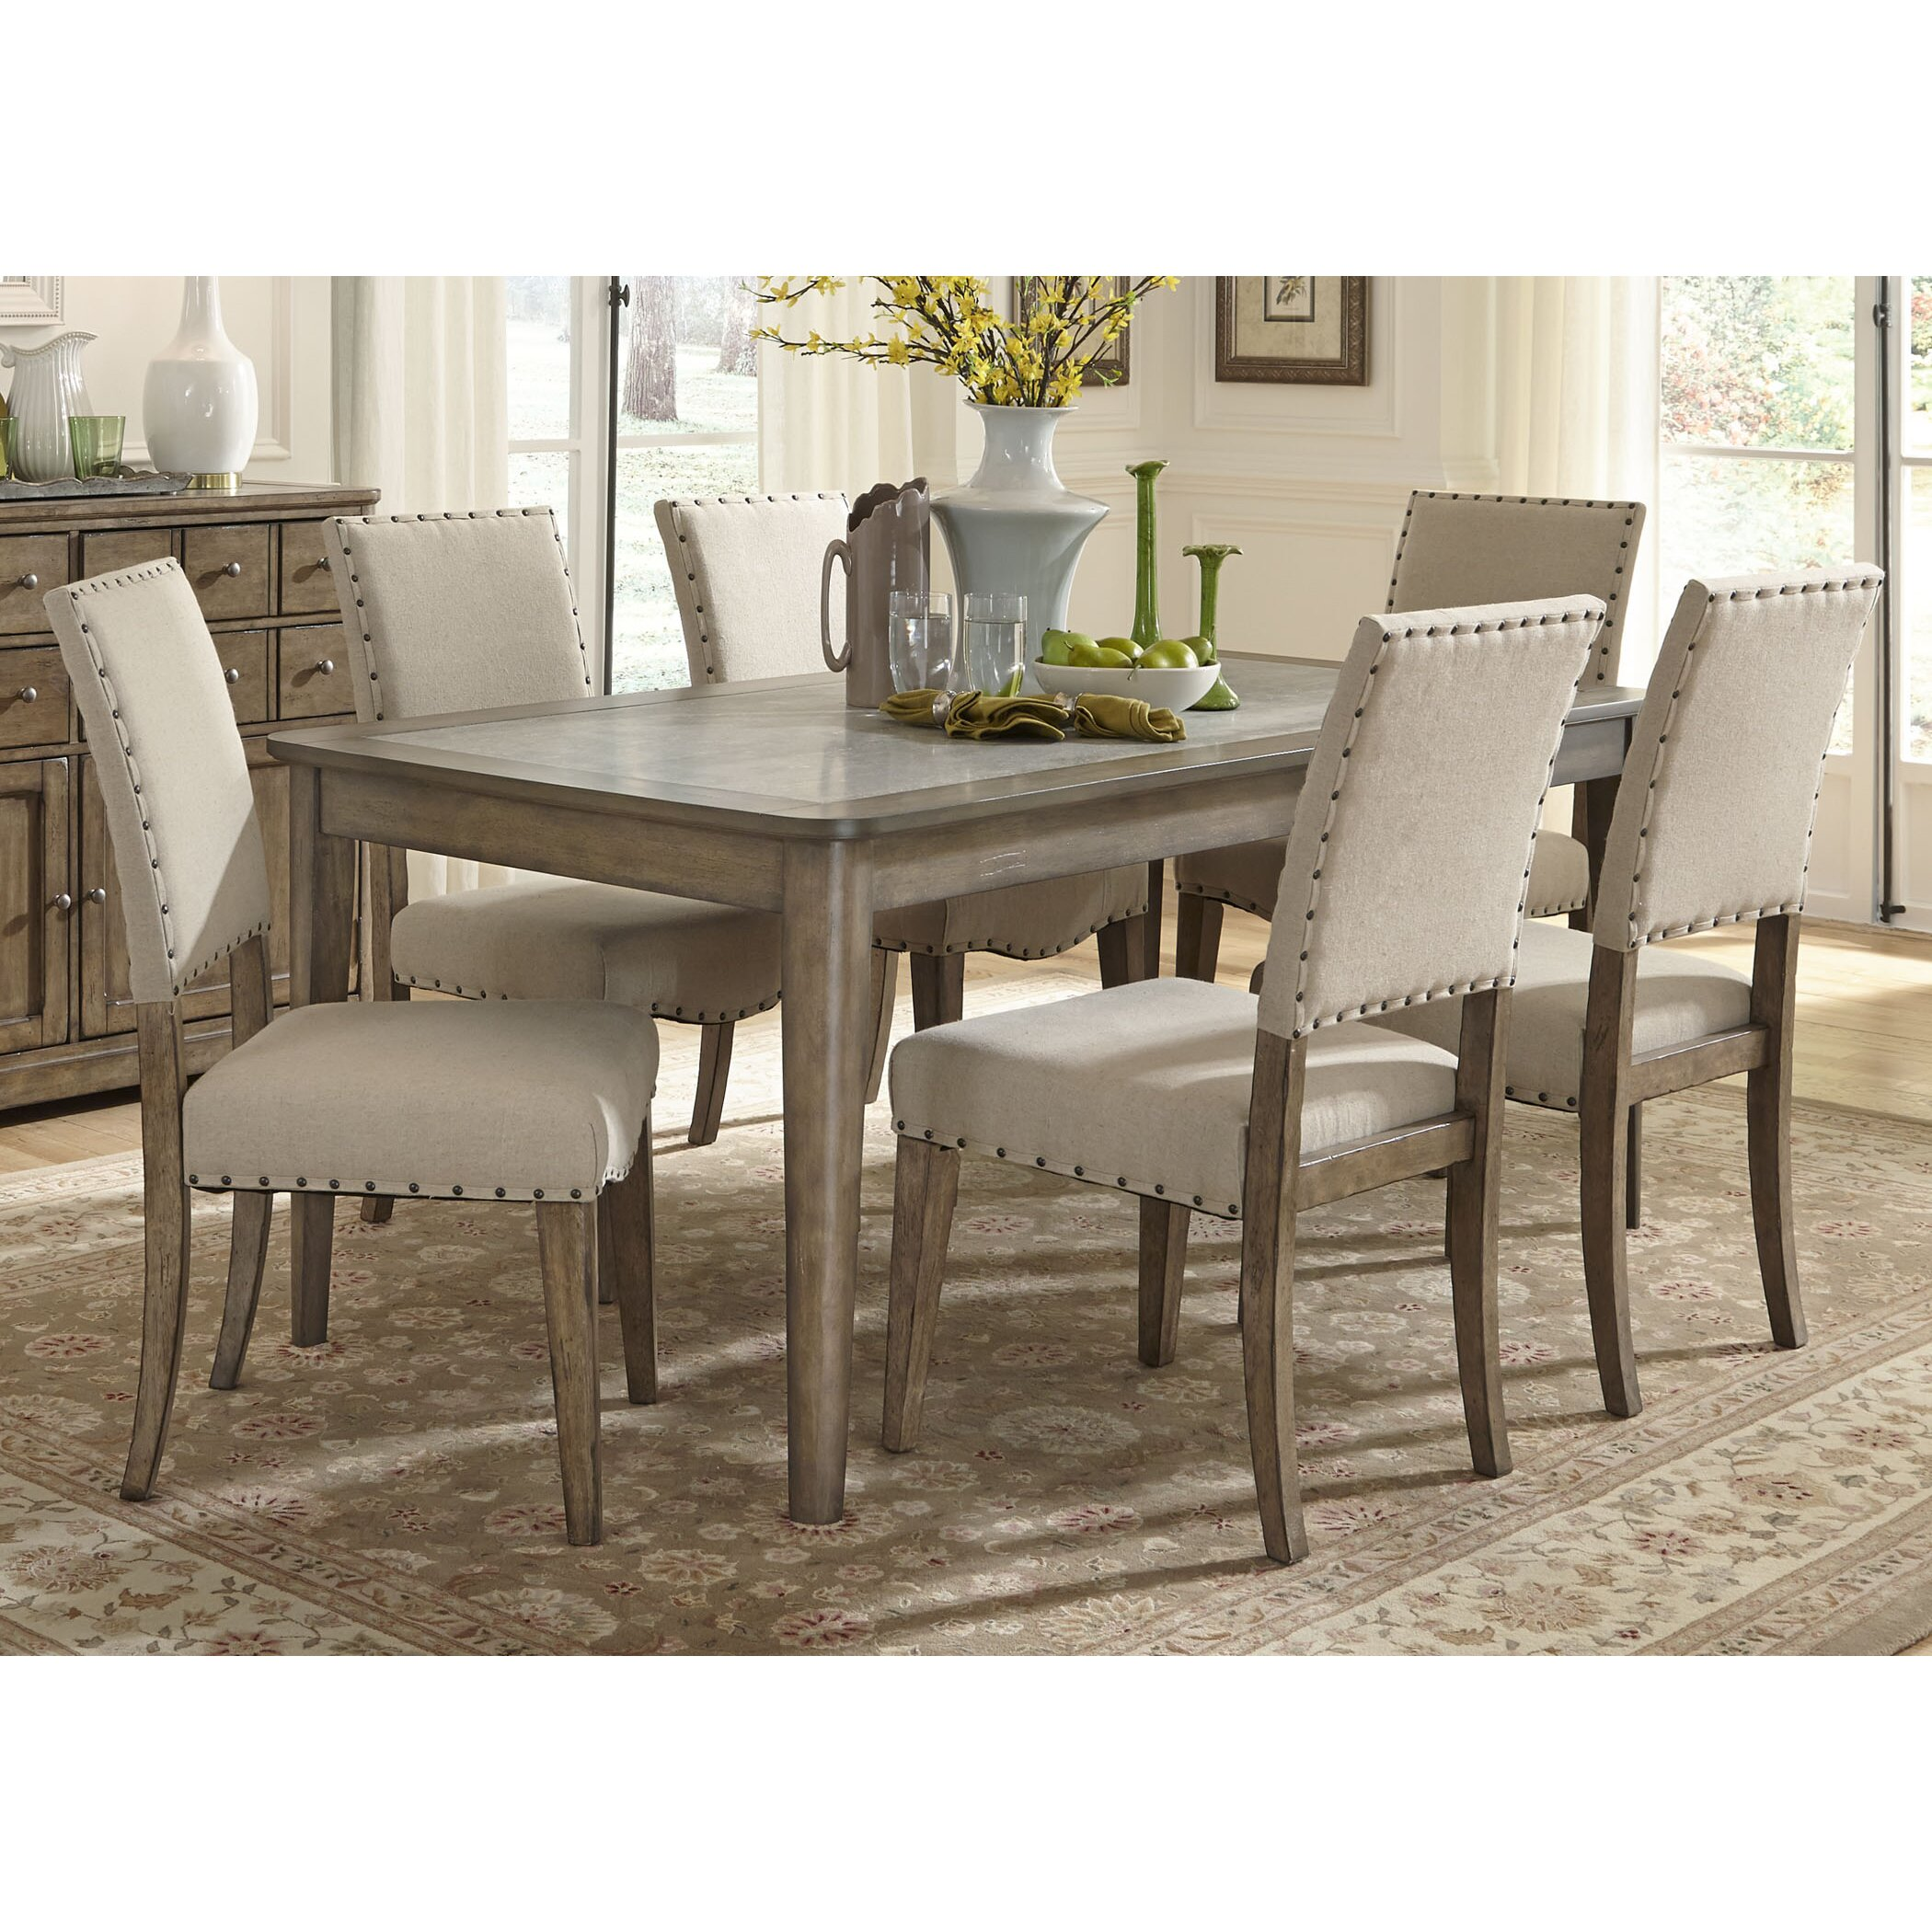 Liberty furniture 7 piece dining set reviews wayfair for Dining room chair set